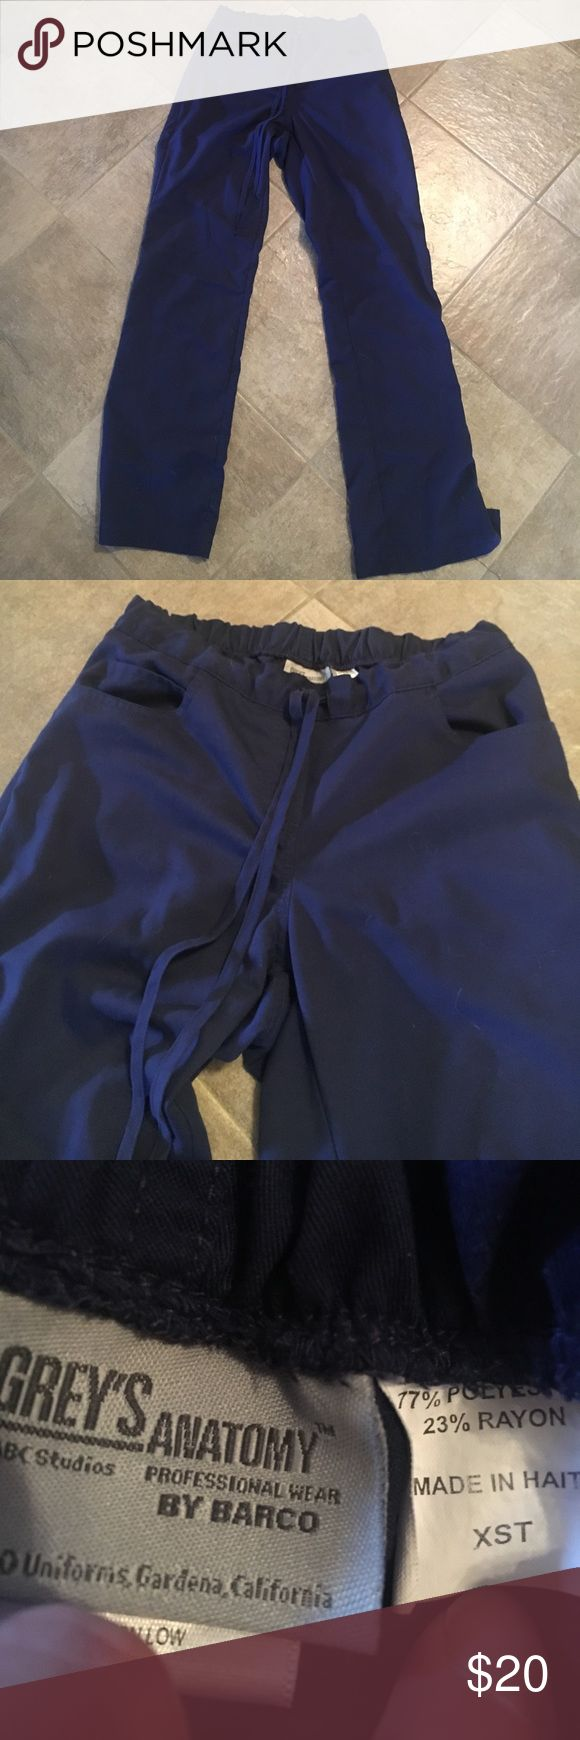 💗24 he SALE💗Greys anatomy navy scrubpant Xs tall Gently pre loved. Great condition over all with very minor to no pilling. Size xs TALL. greys anatomy Pants